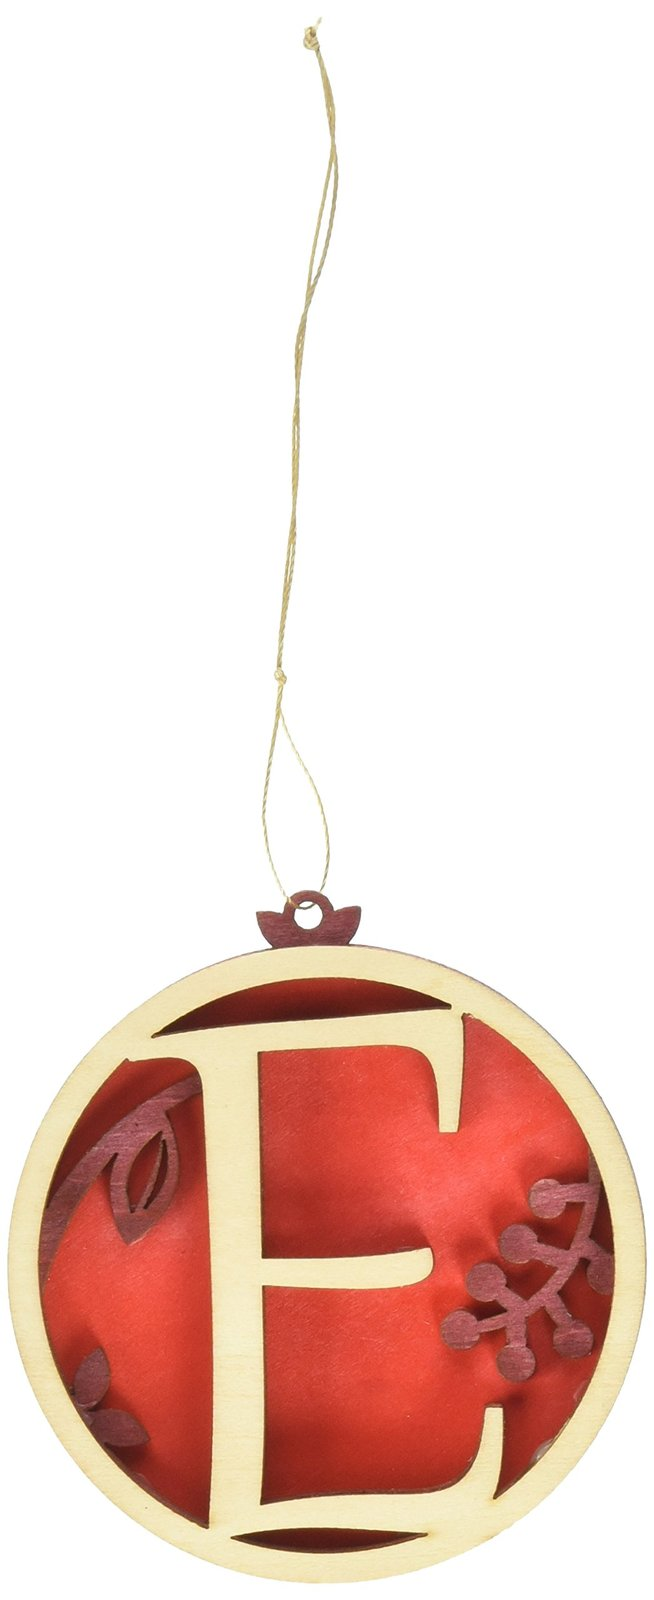 Enesco Flourish Letter E Monogramed Ornament, 3.2-Inch